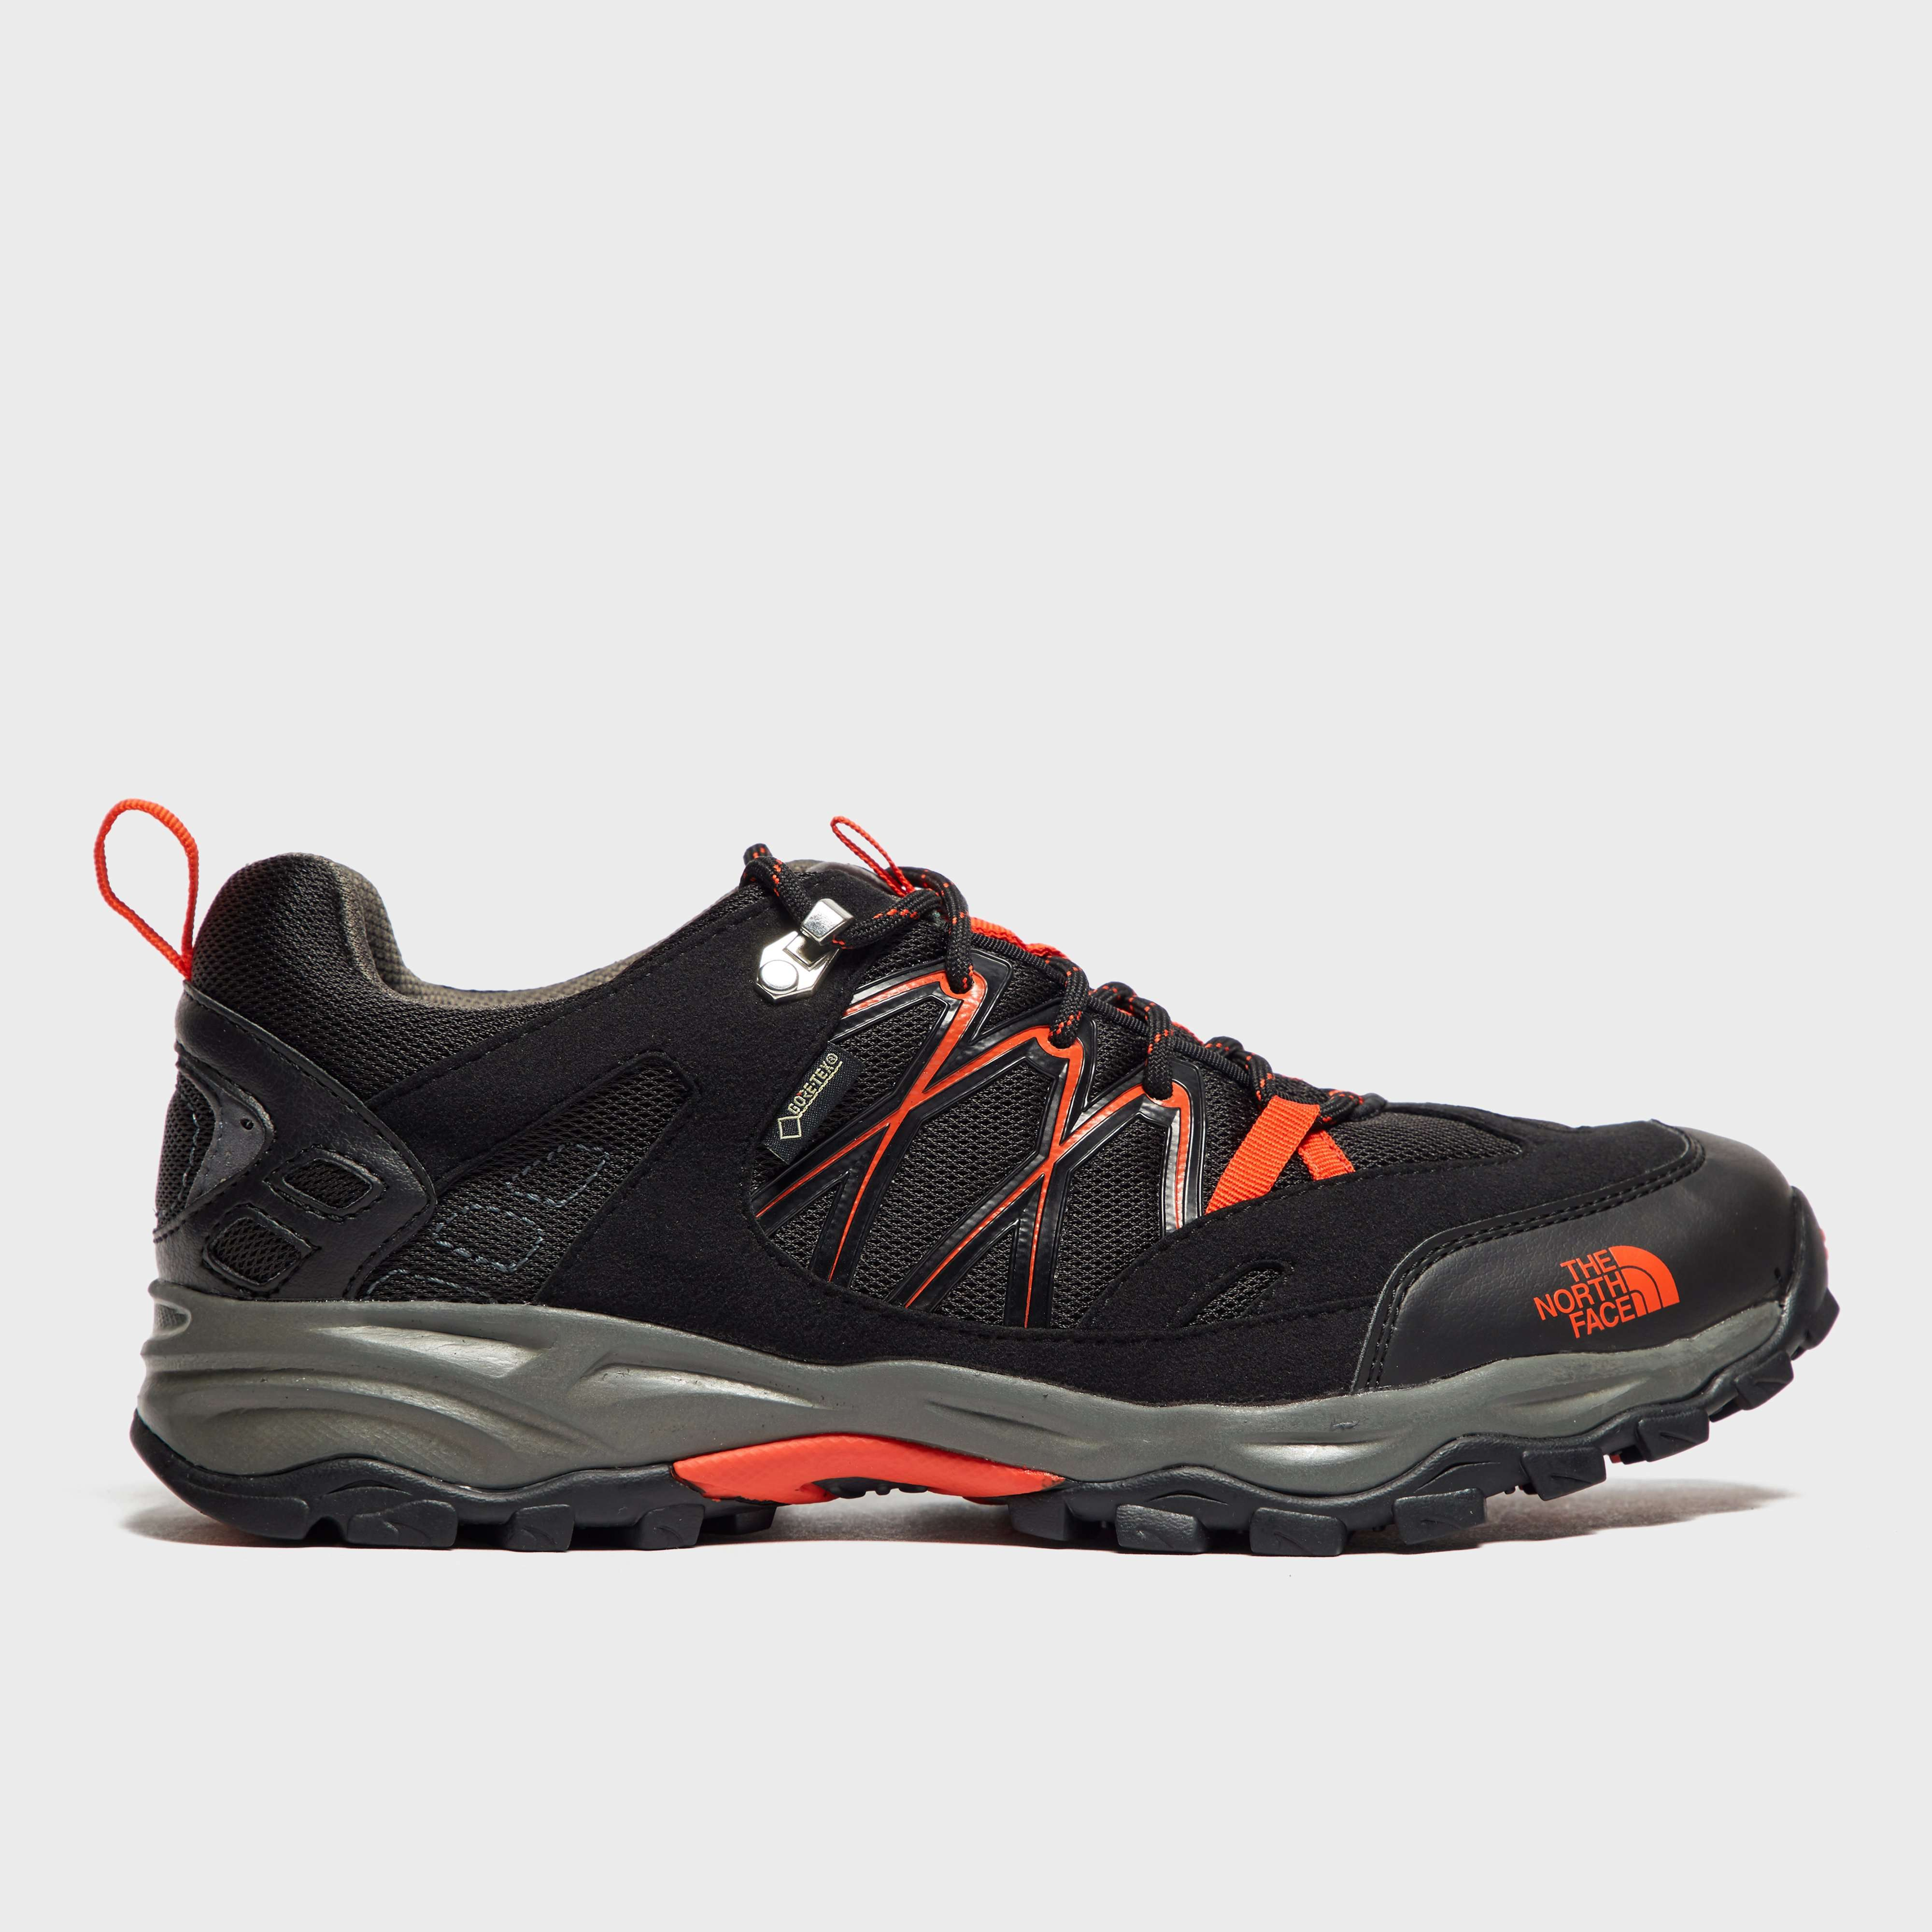 THE NORTH FACE Men's Terra GORE-TEX® Shoe